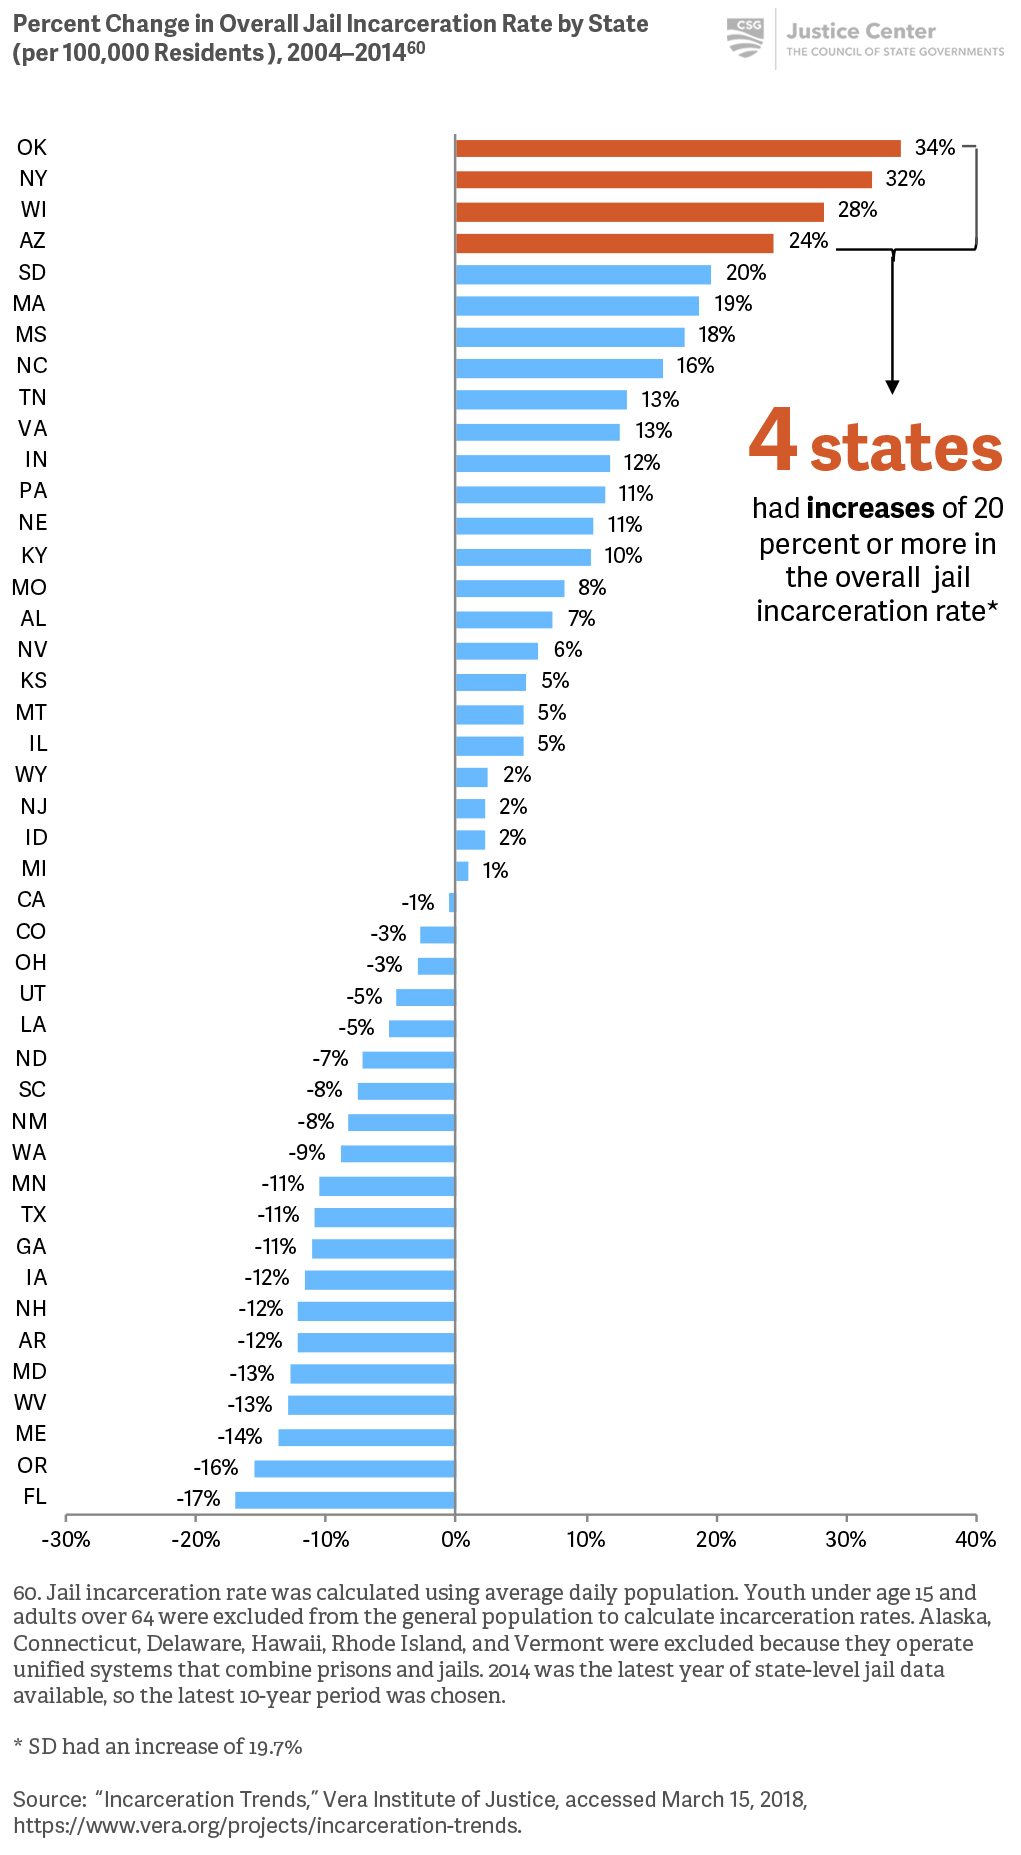 Changes in overall jail incarceration rates vary widely across states.